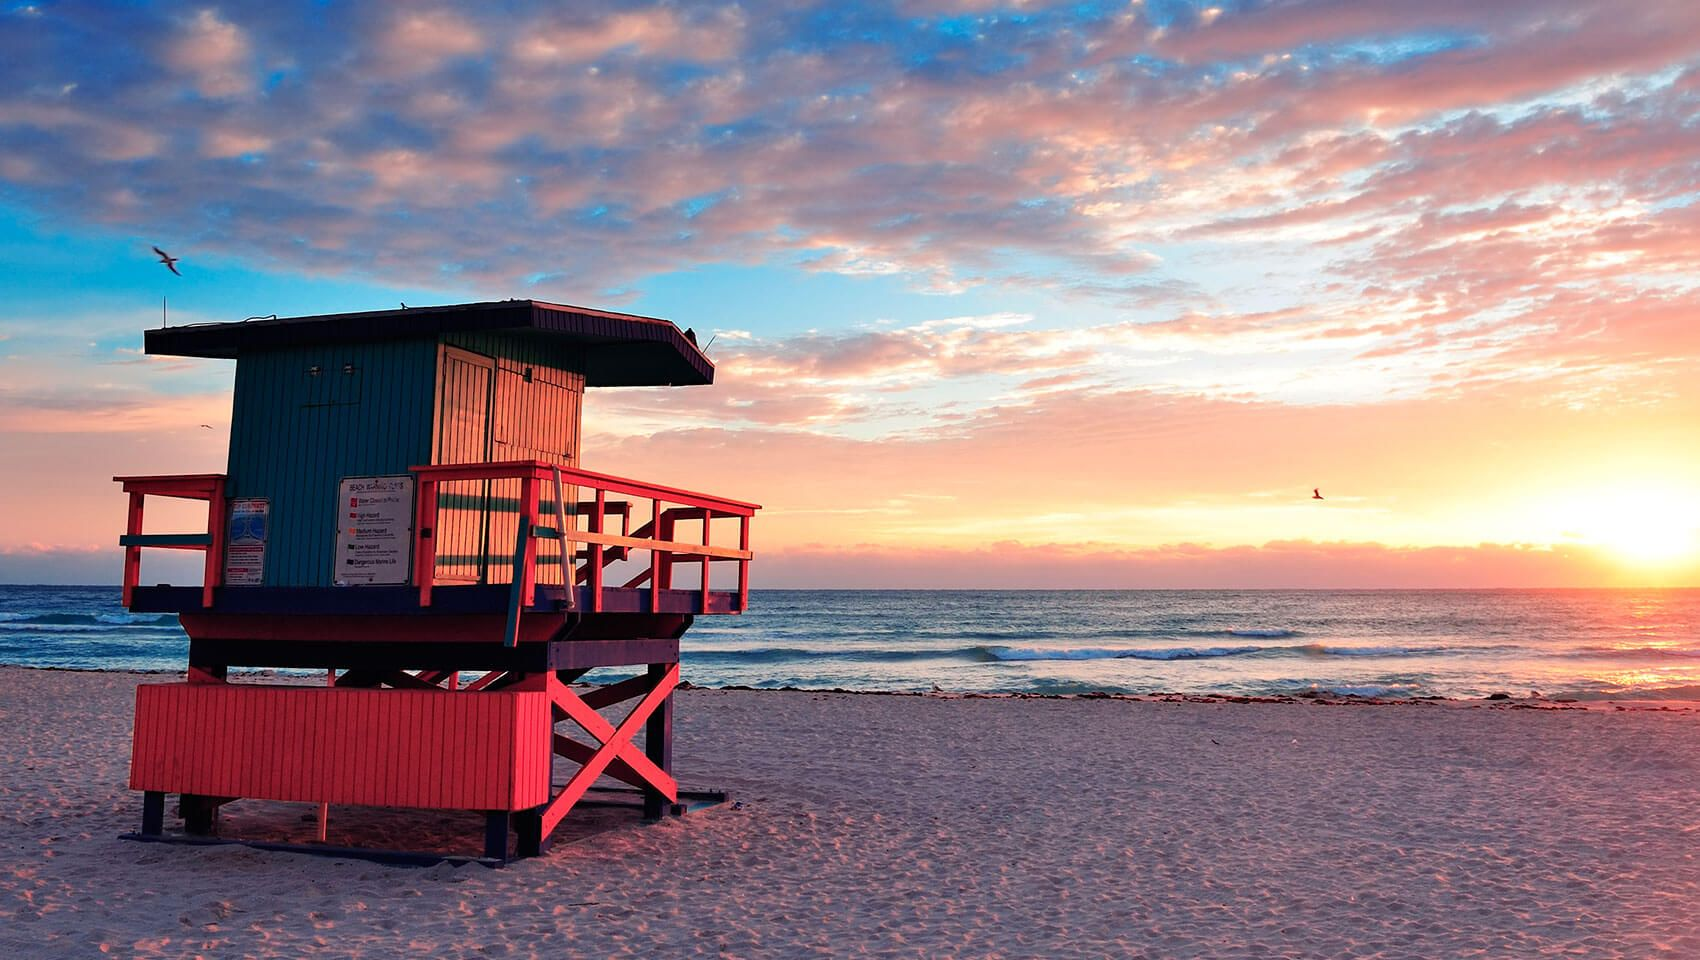 Best Places To Visit In U S In April For Amazing Spring Experience Miami Hotels South Beach South Beach Miami Miami Beach Travel